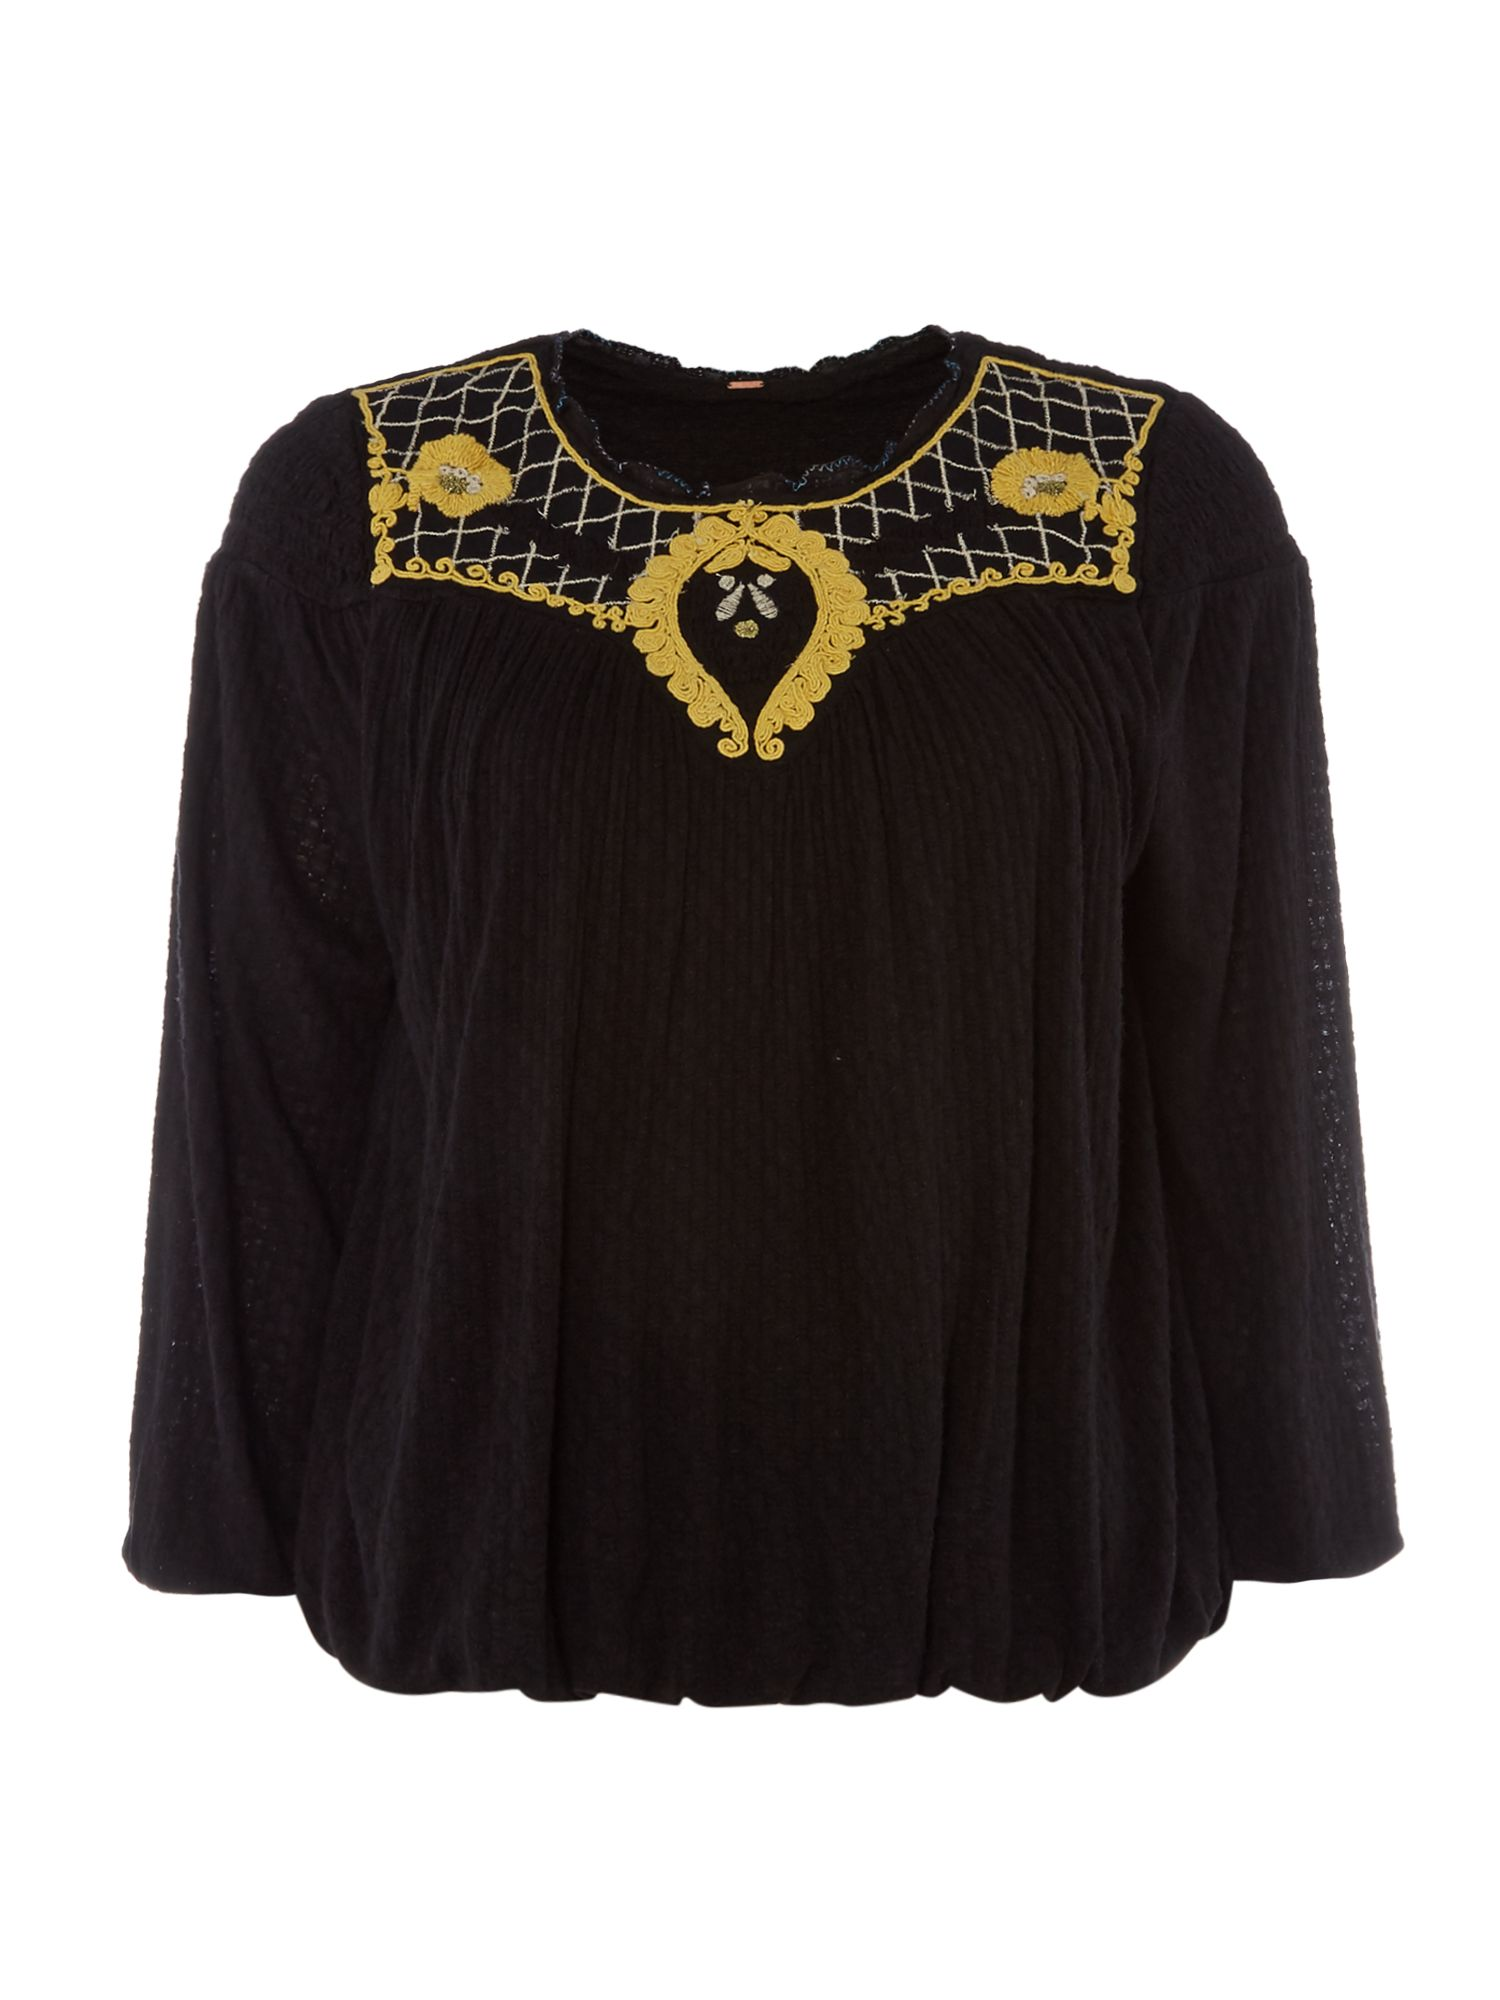 Free People Begonia 34 Sleeve Tee with Embroidery, Black